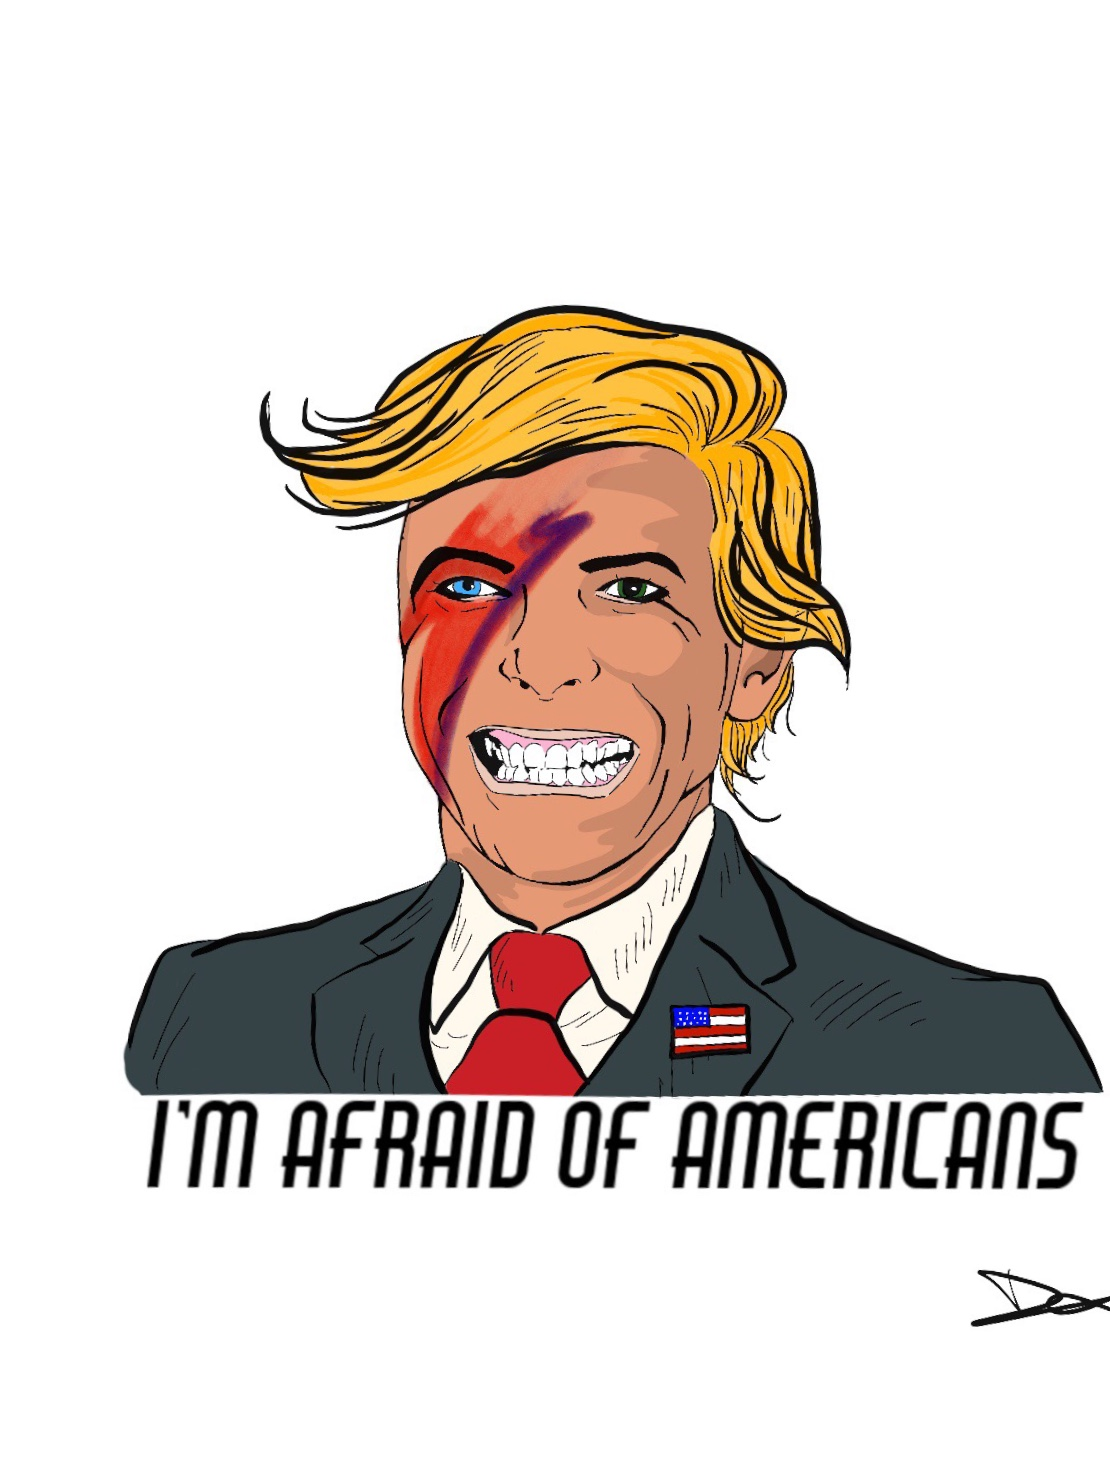 Afraid of Americans